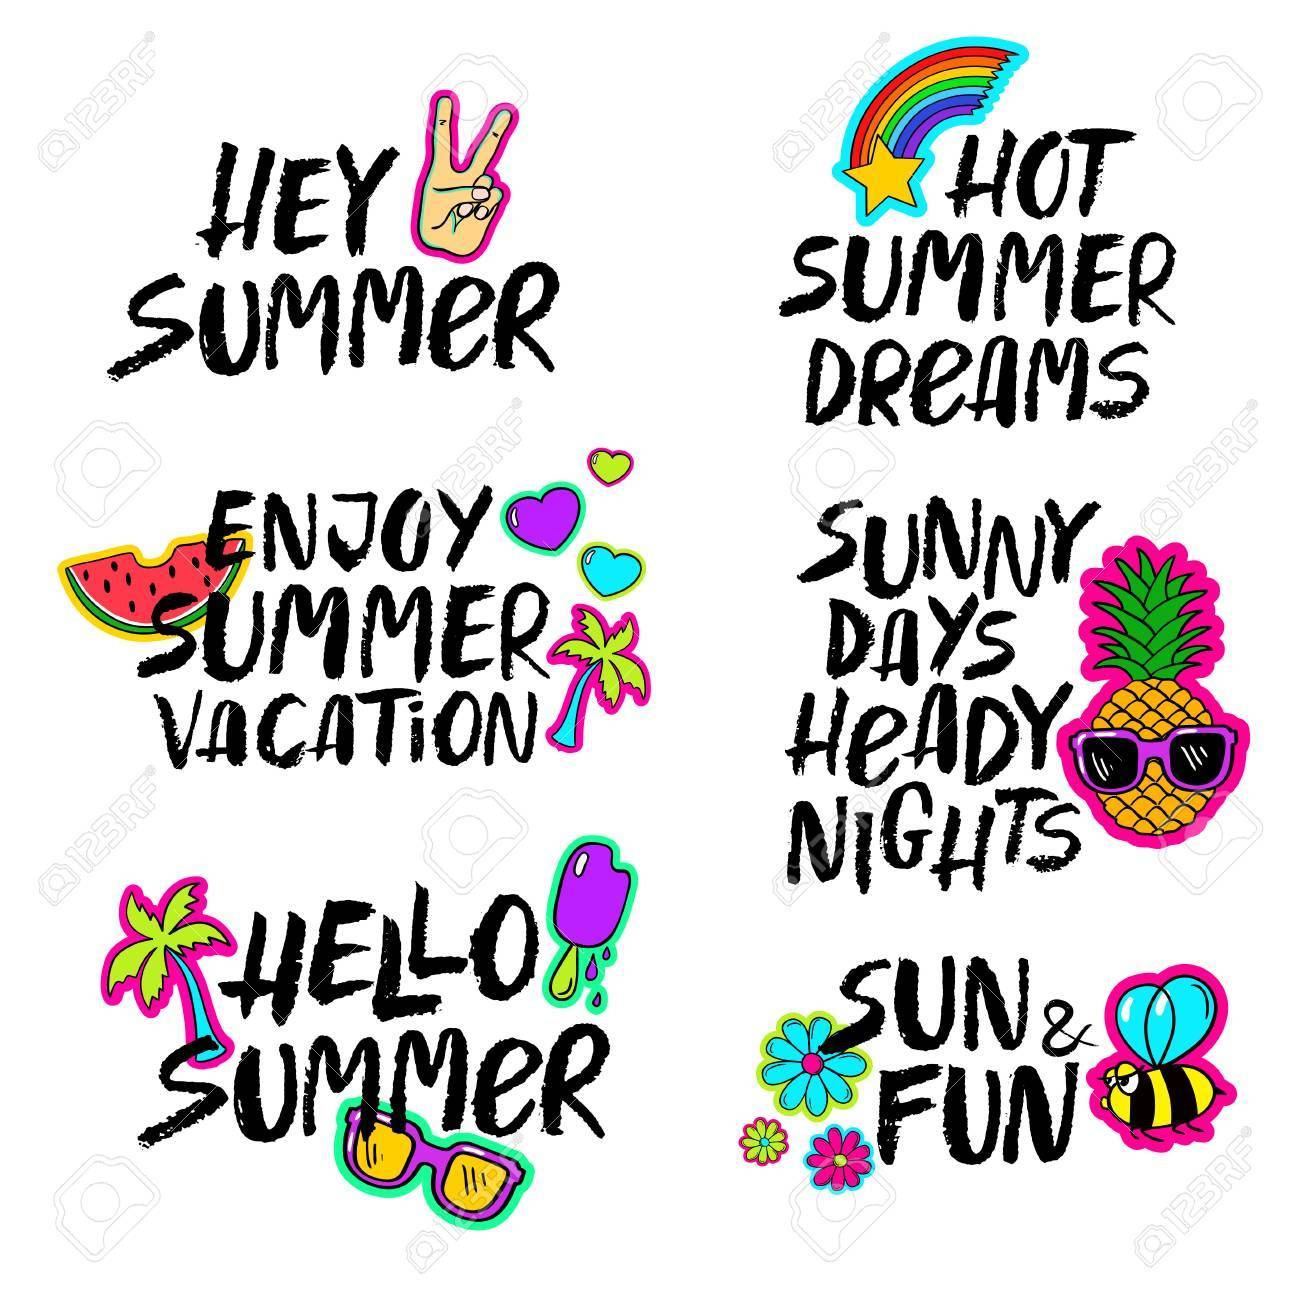 Inspirational Phrases Collection Of Summer Inspirational And Motivational Saying Phrases